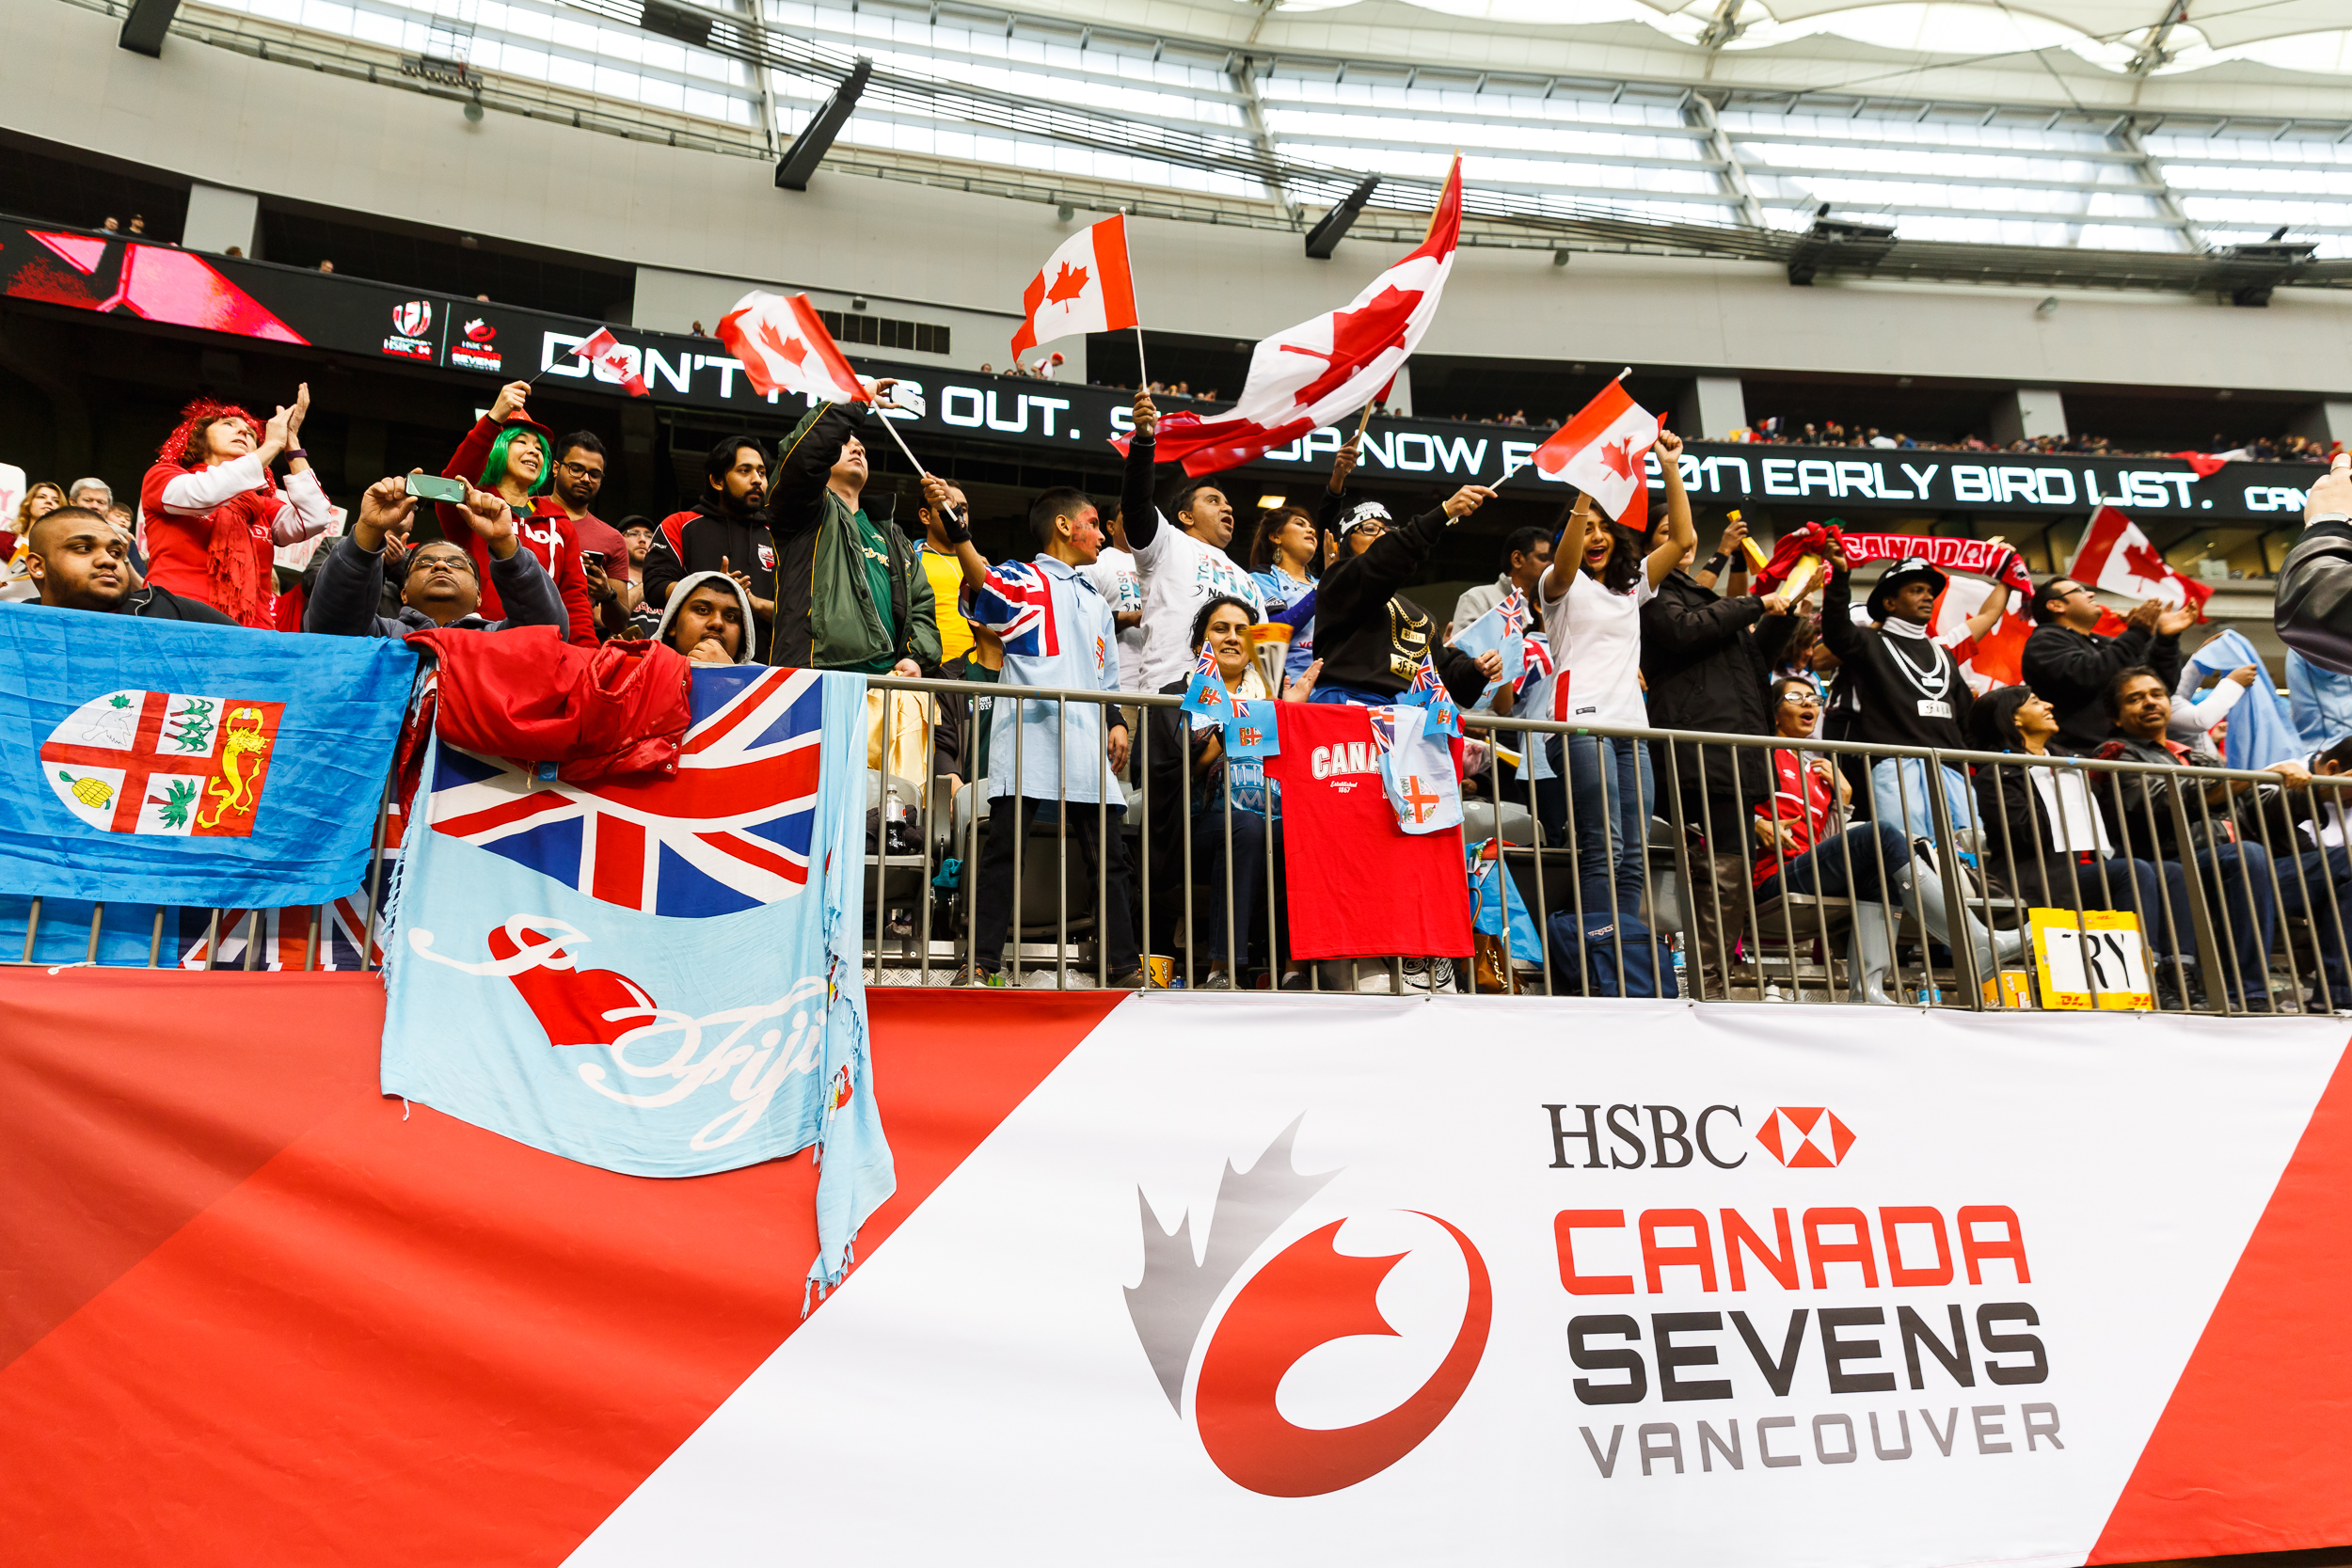 CANADA RUGBY SEVENS 2016